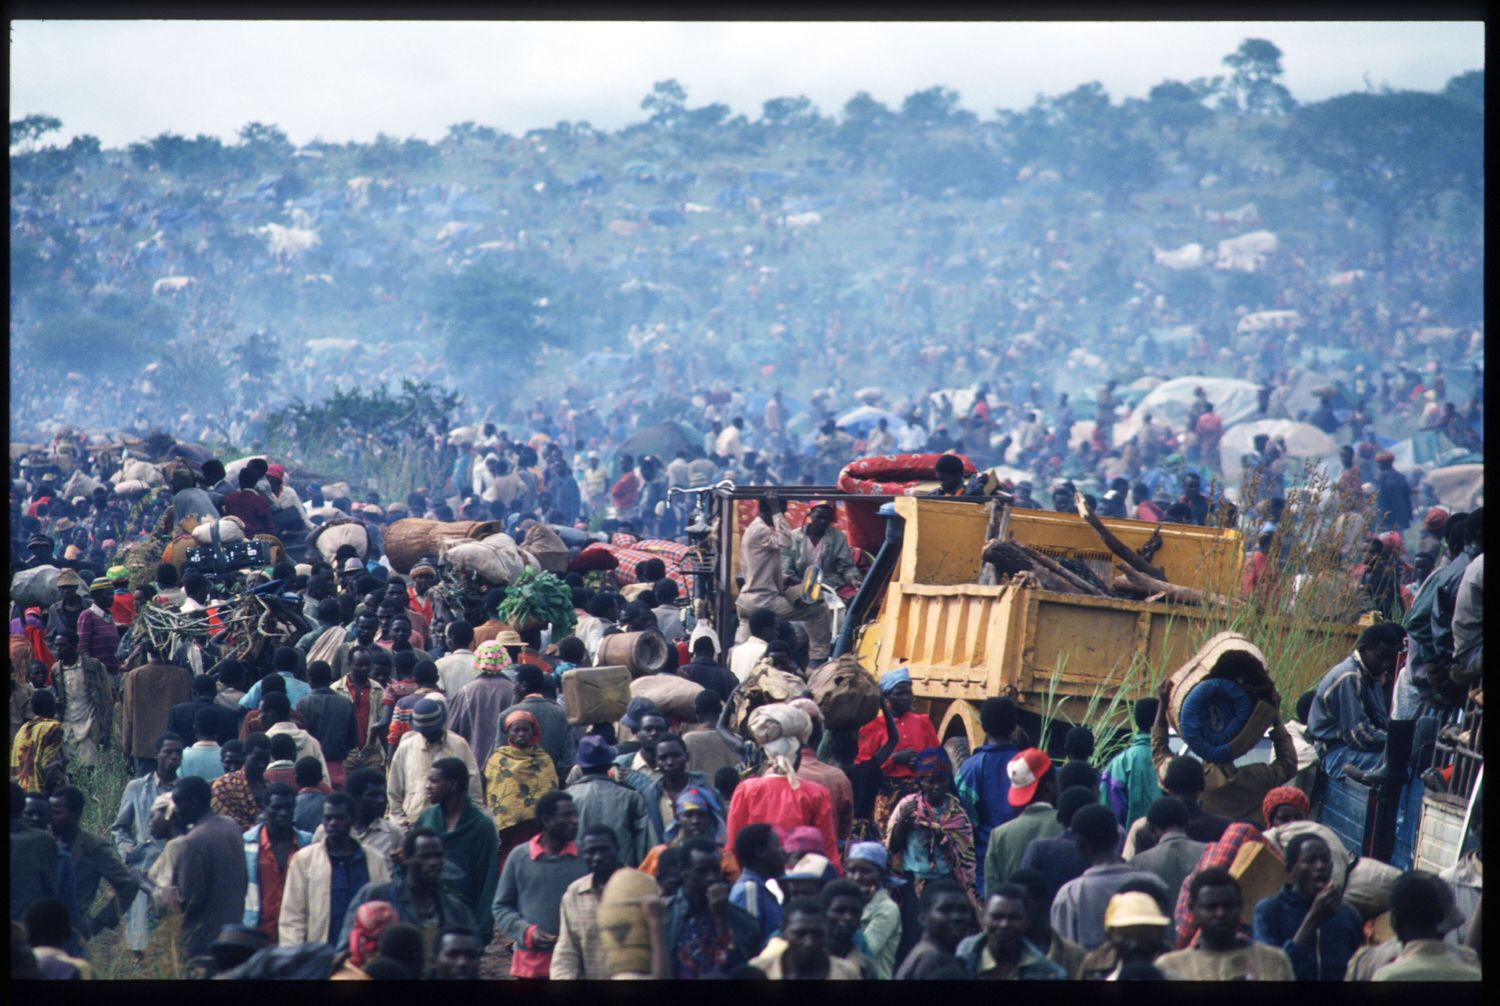 186971 029: A construction truck edges along April 30, 1994 as people file past it in Tanzania. Two hundred fifty thousand refugees cross the border to flee the advance of the Tutsi Rwandese Patriotic Front. The trouble begins when President Habyarimana's plane is shot down near the Kigali airport by members of the government army. (Photo by Scott Peterson/Liaison)